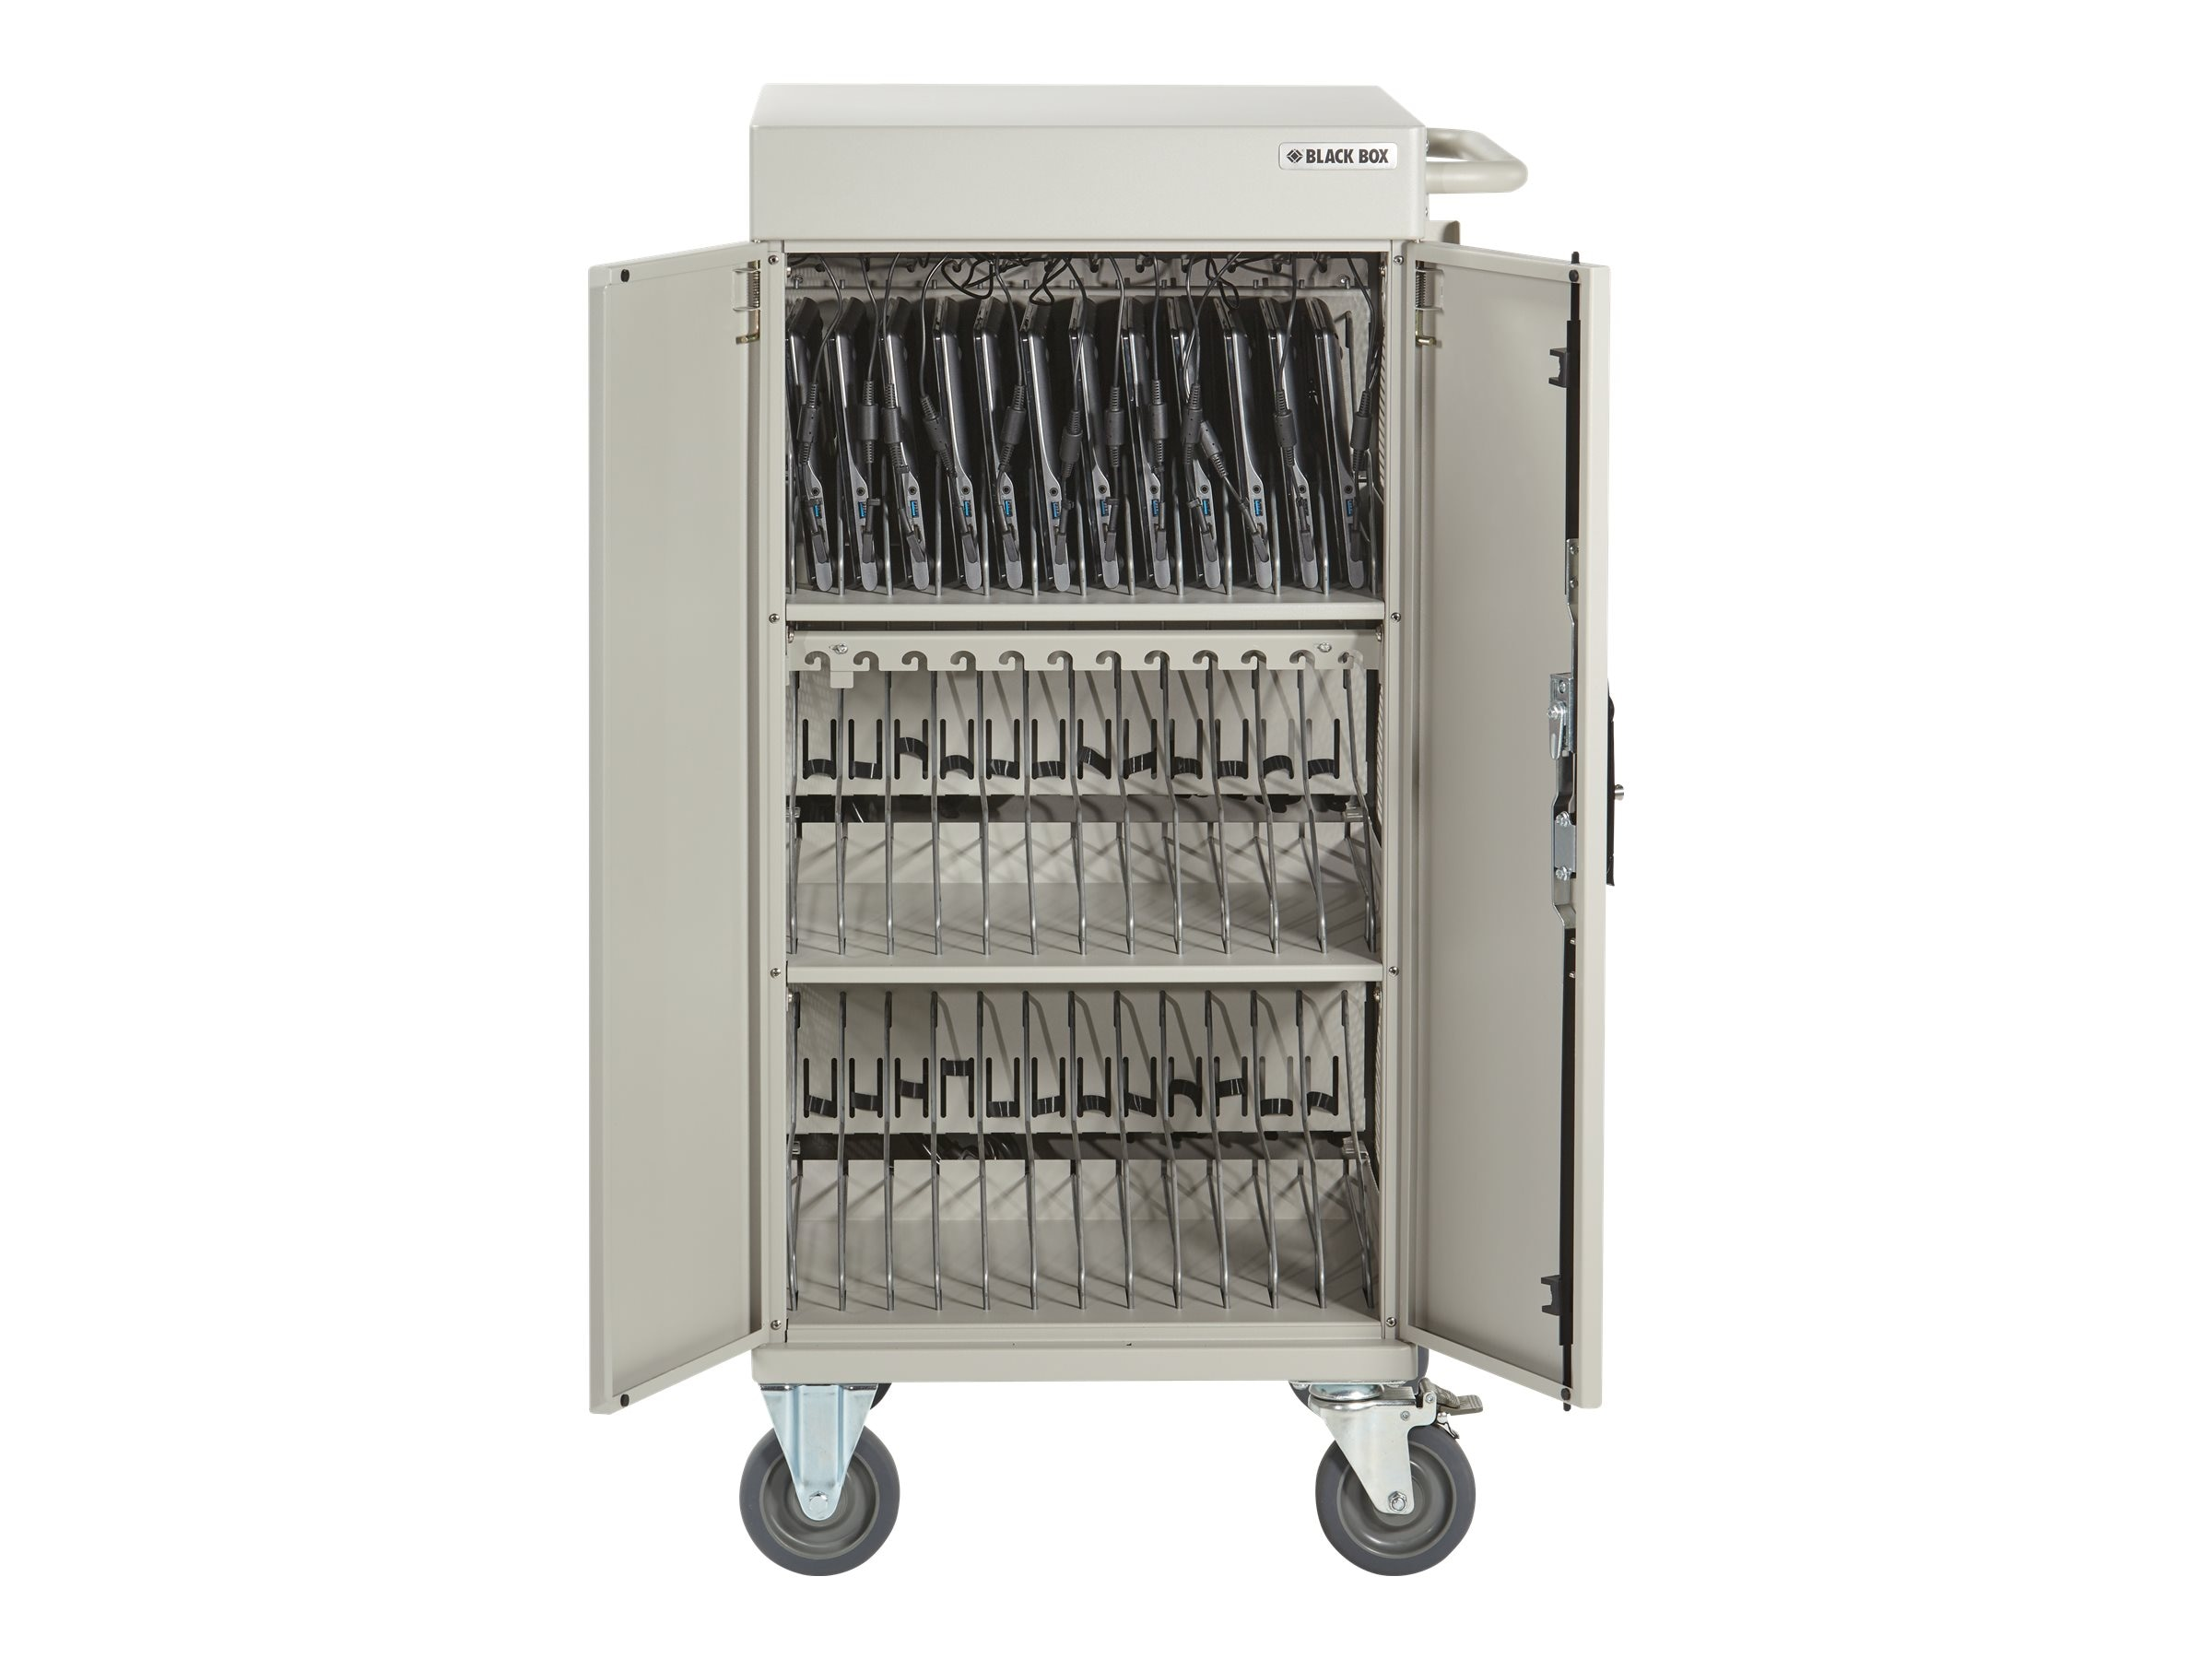 Black Box 30-Unit Standard Cart - Basic Distribution Charging, Hinged Door, Keylock, Front Cable Management